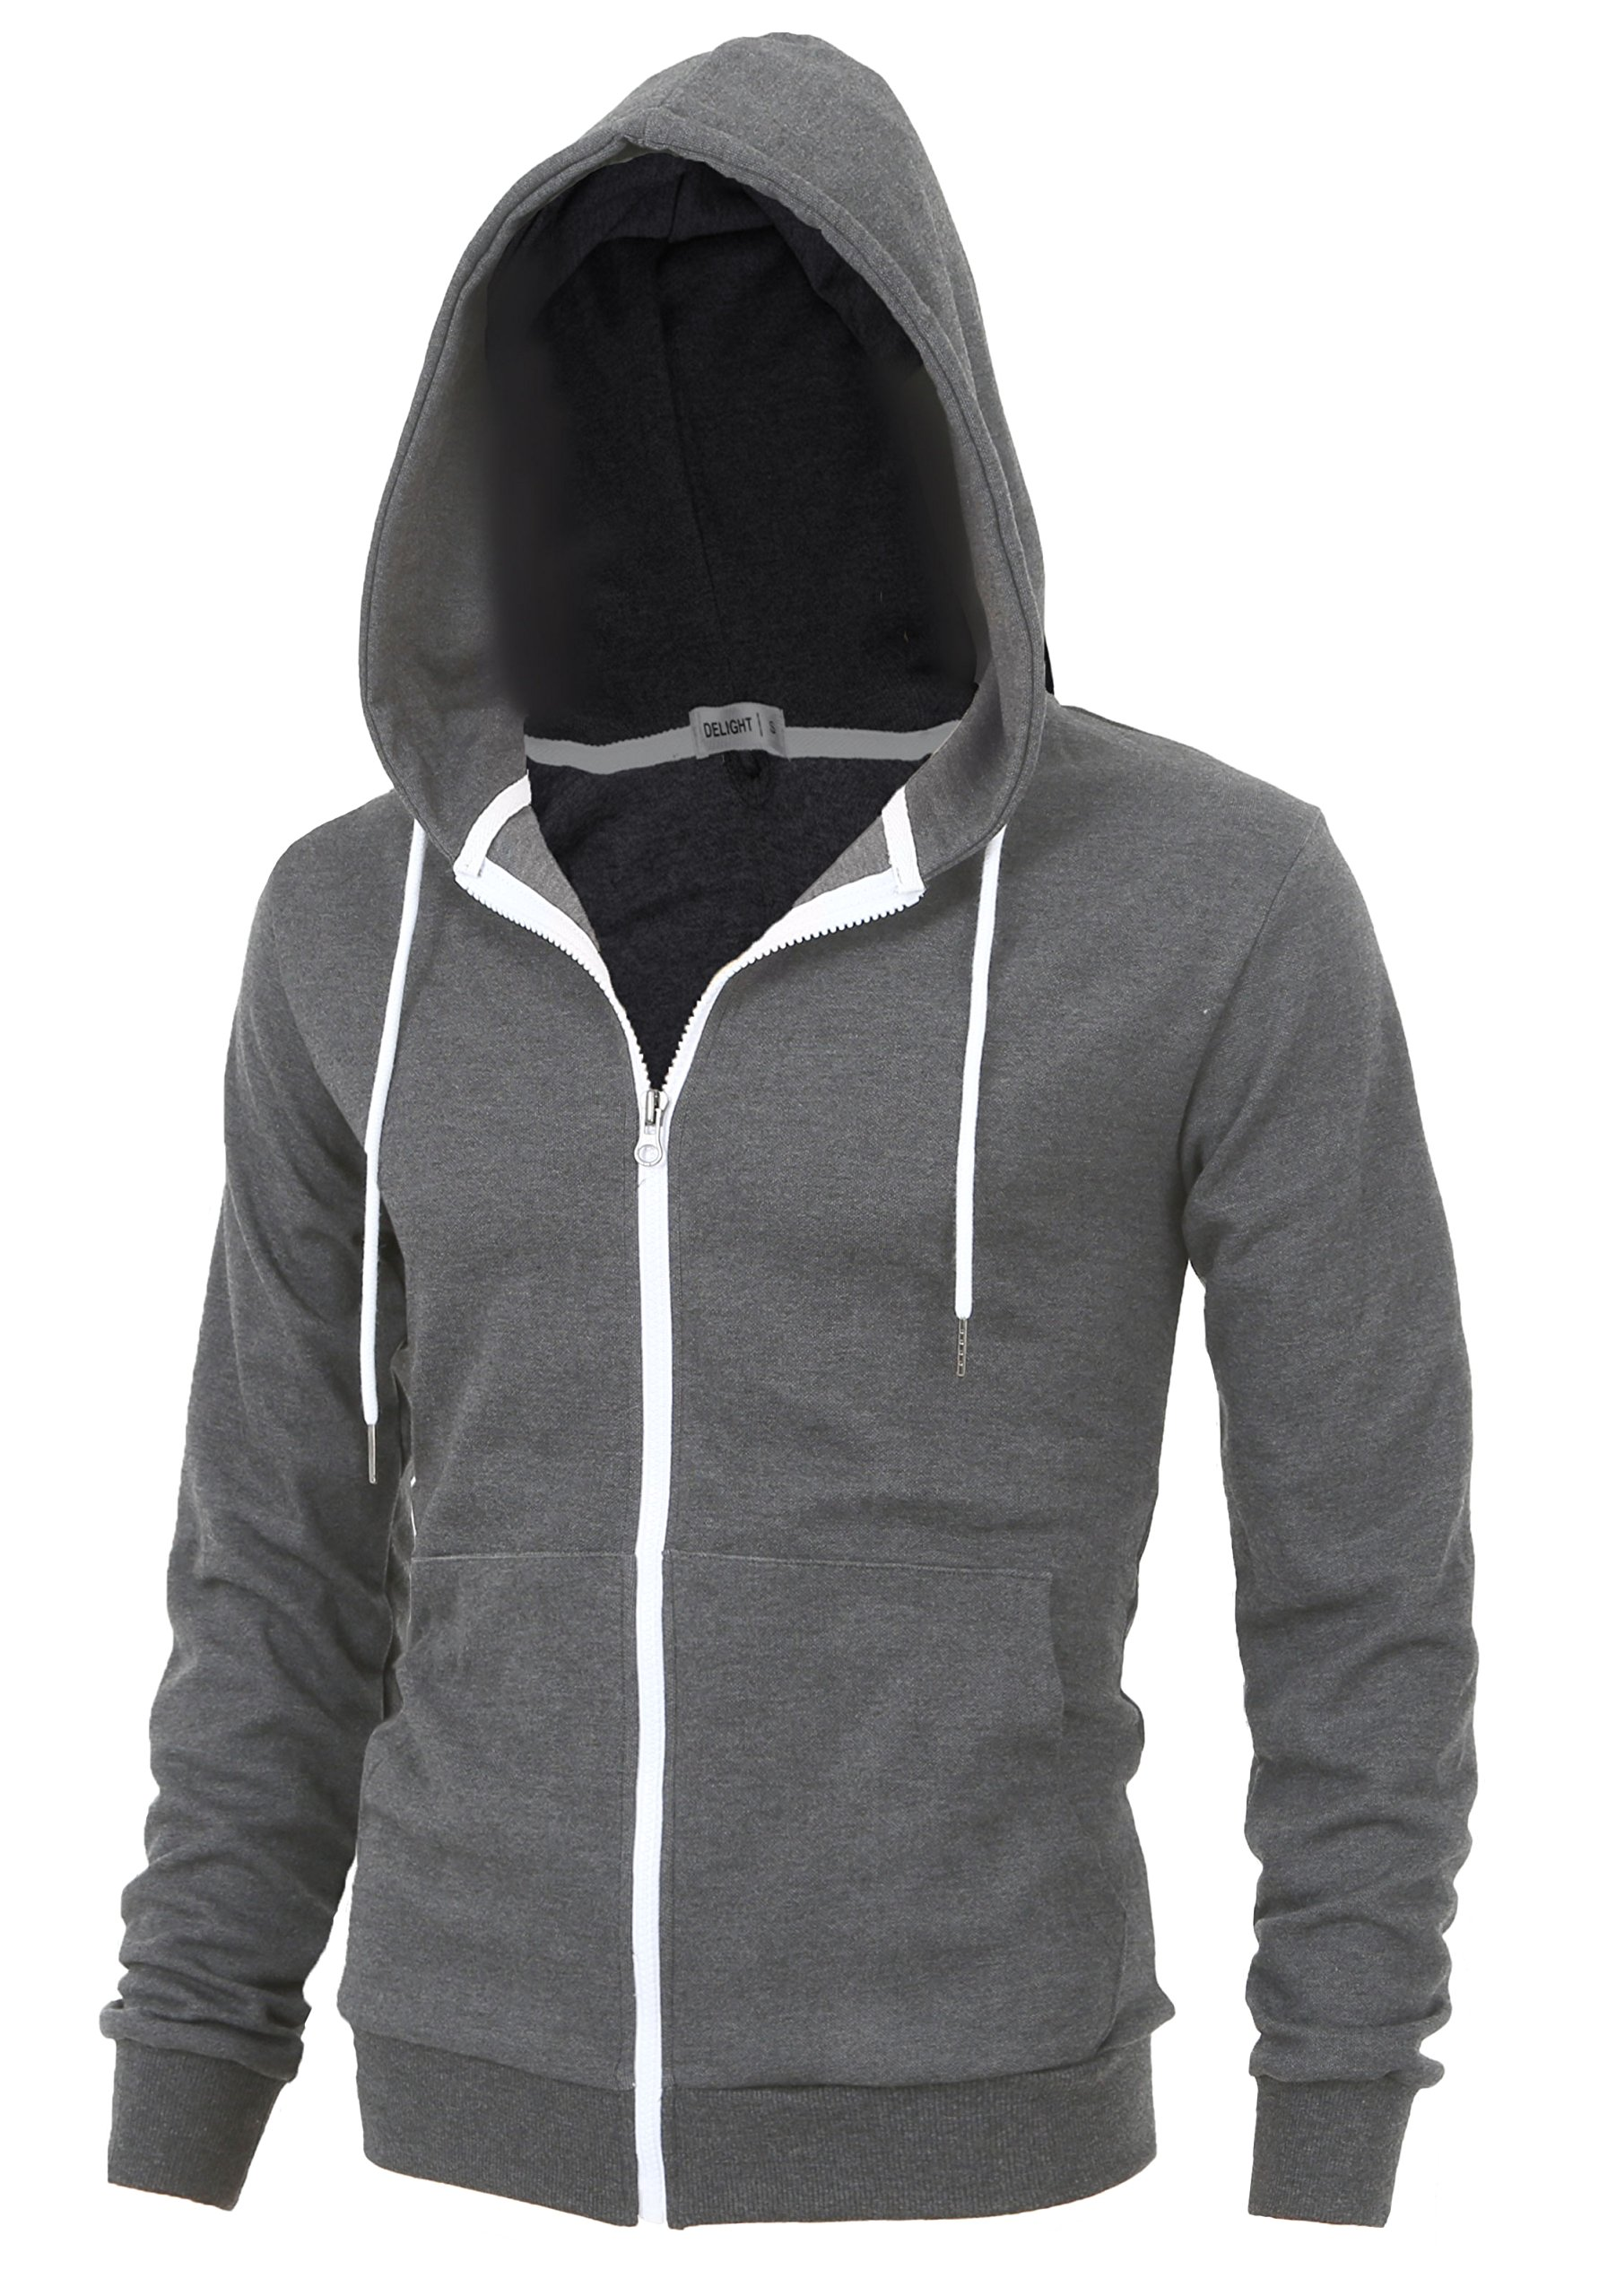 ''DELIGHT'' Men's Fashion Fit Full-zip HOODIE with Inner Cell Phone Pocket (US LARGE, Dark Grey) by Lite Delights